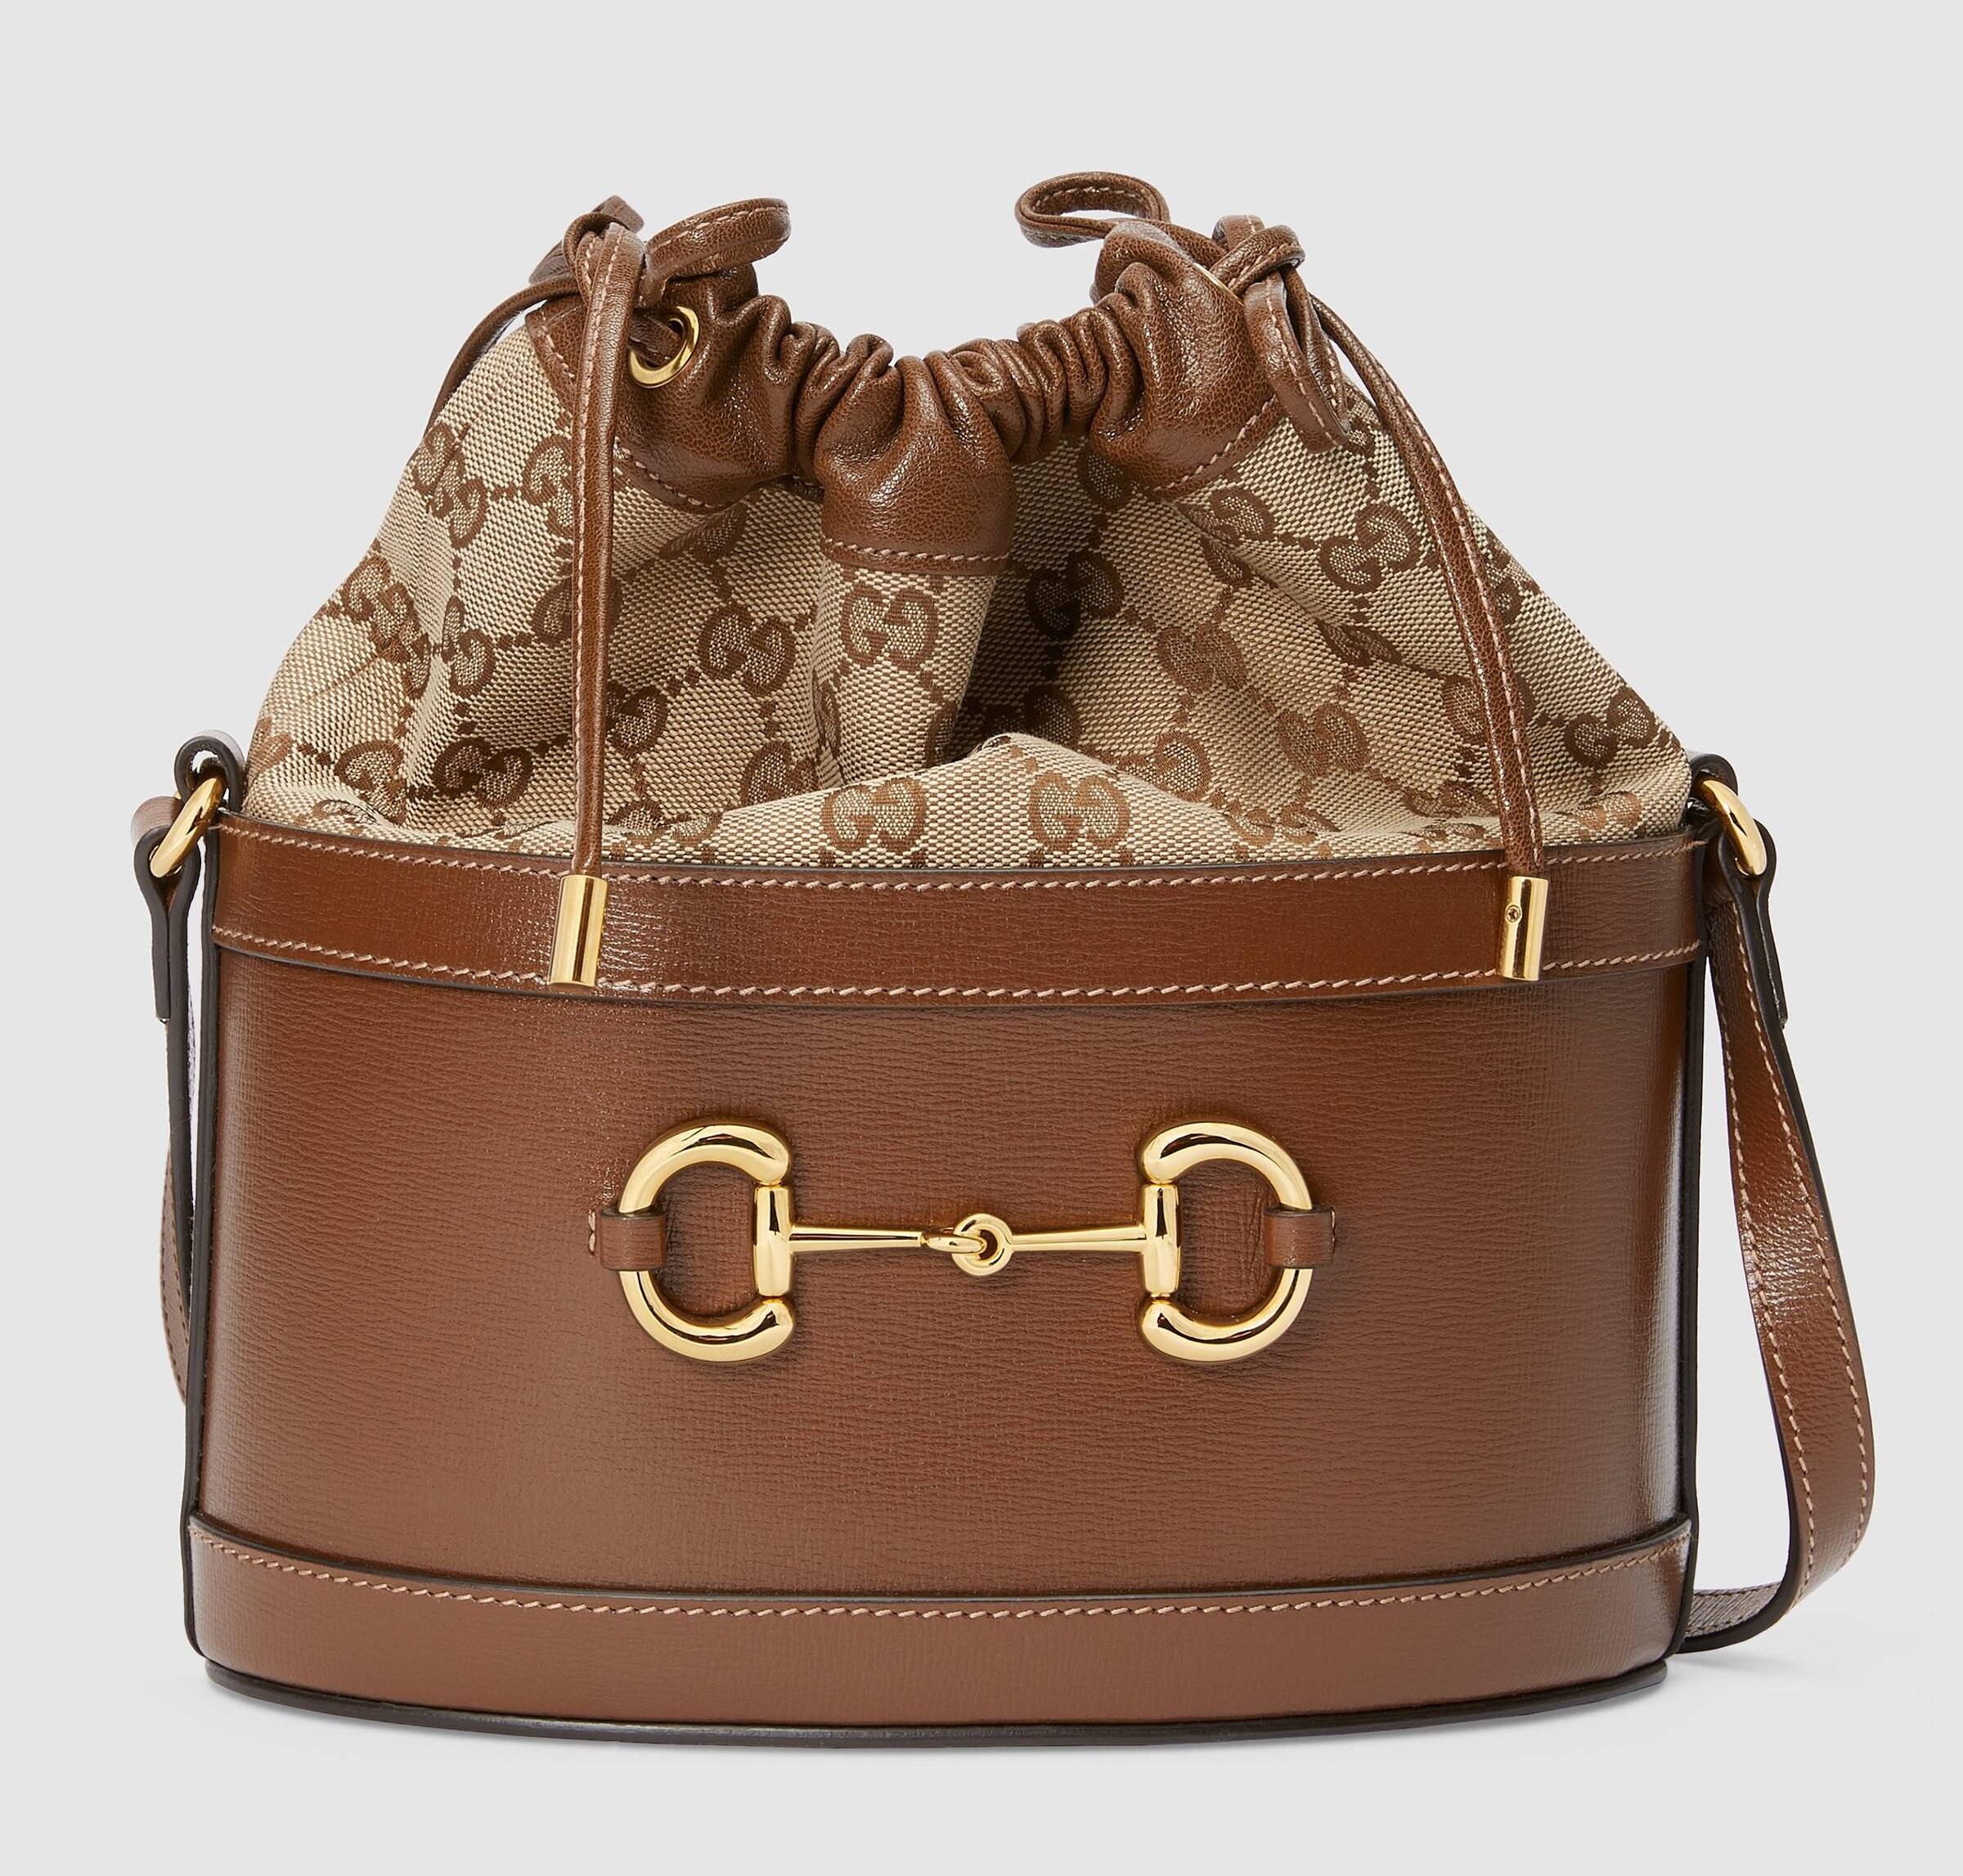 Gucci 1955 Horsebit Bucket Bag 602118 Brown Leather